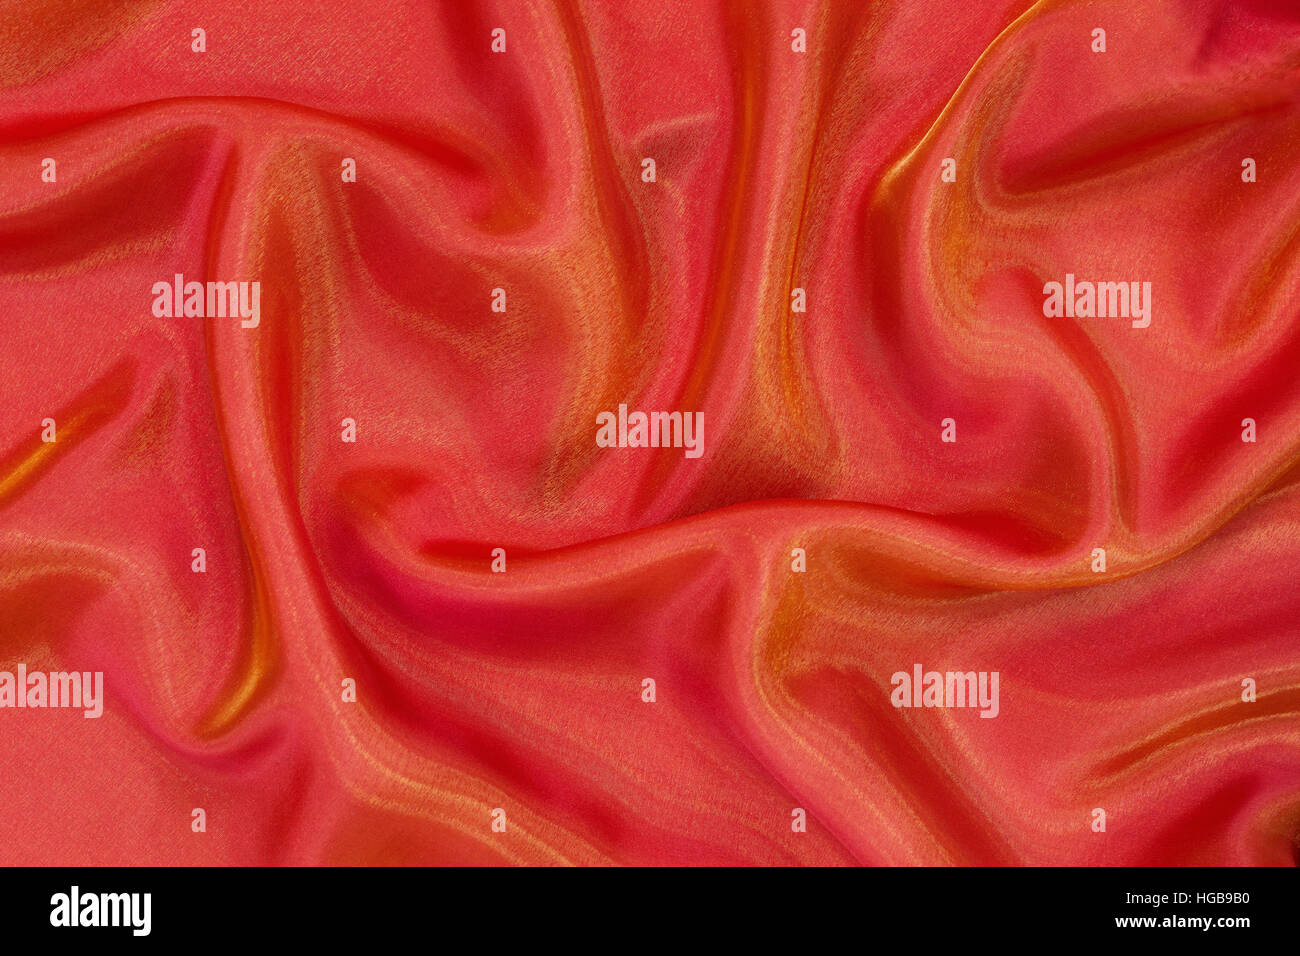 background drape orange organza (view from above) - Stock Image